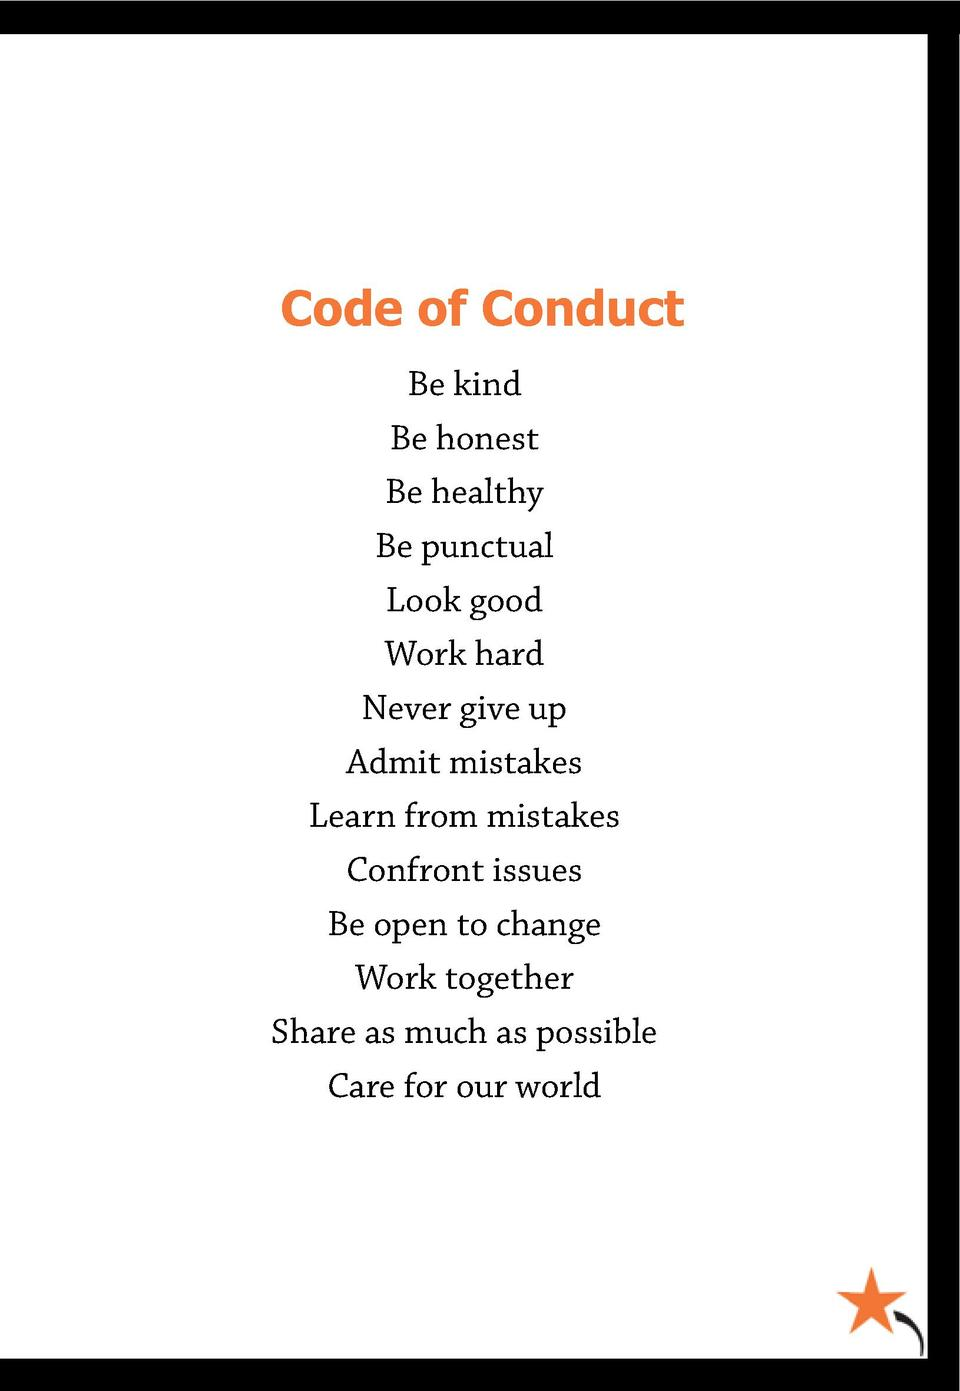 Code of Conduct Be kind Be honest Be healthy Be punctual Look good Work hard Never give up Admit mistakes Learn from mista...